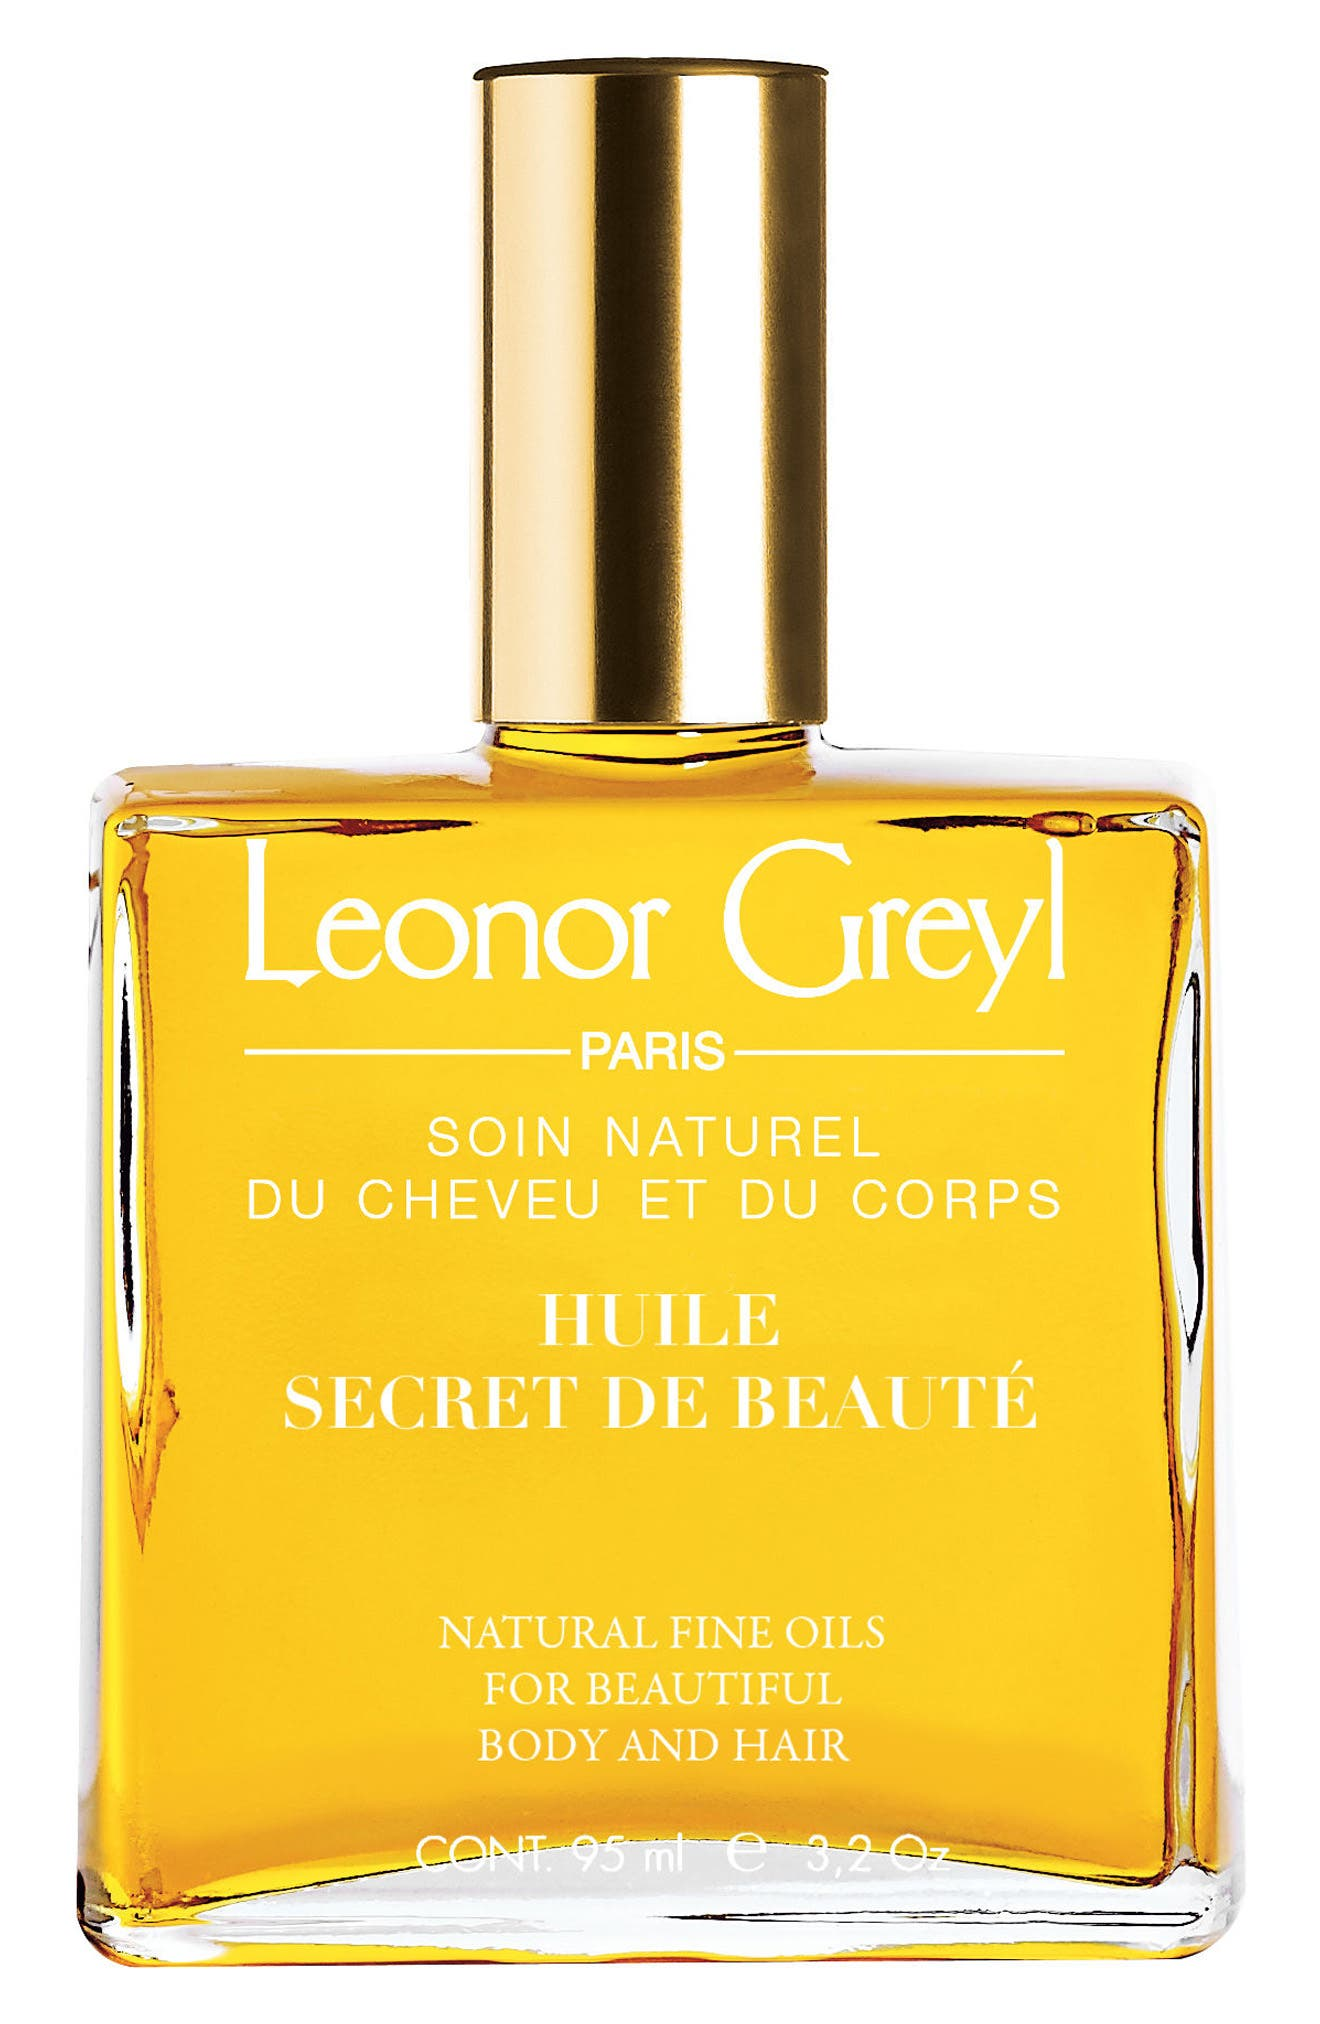 Main Image - Leonor Greyl PARIS 'Huile Secret de Beauté' Hair & Skin Oil